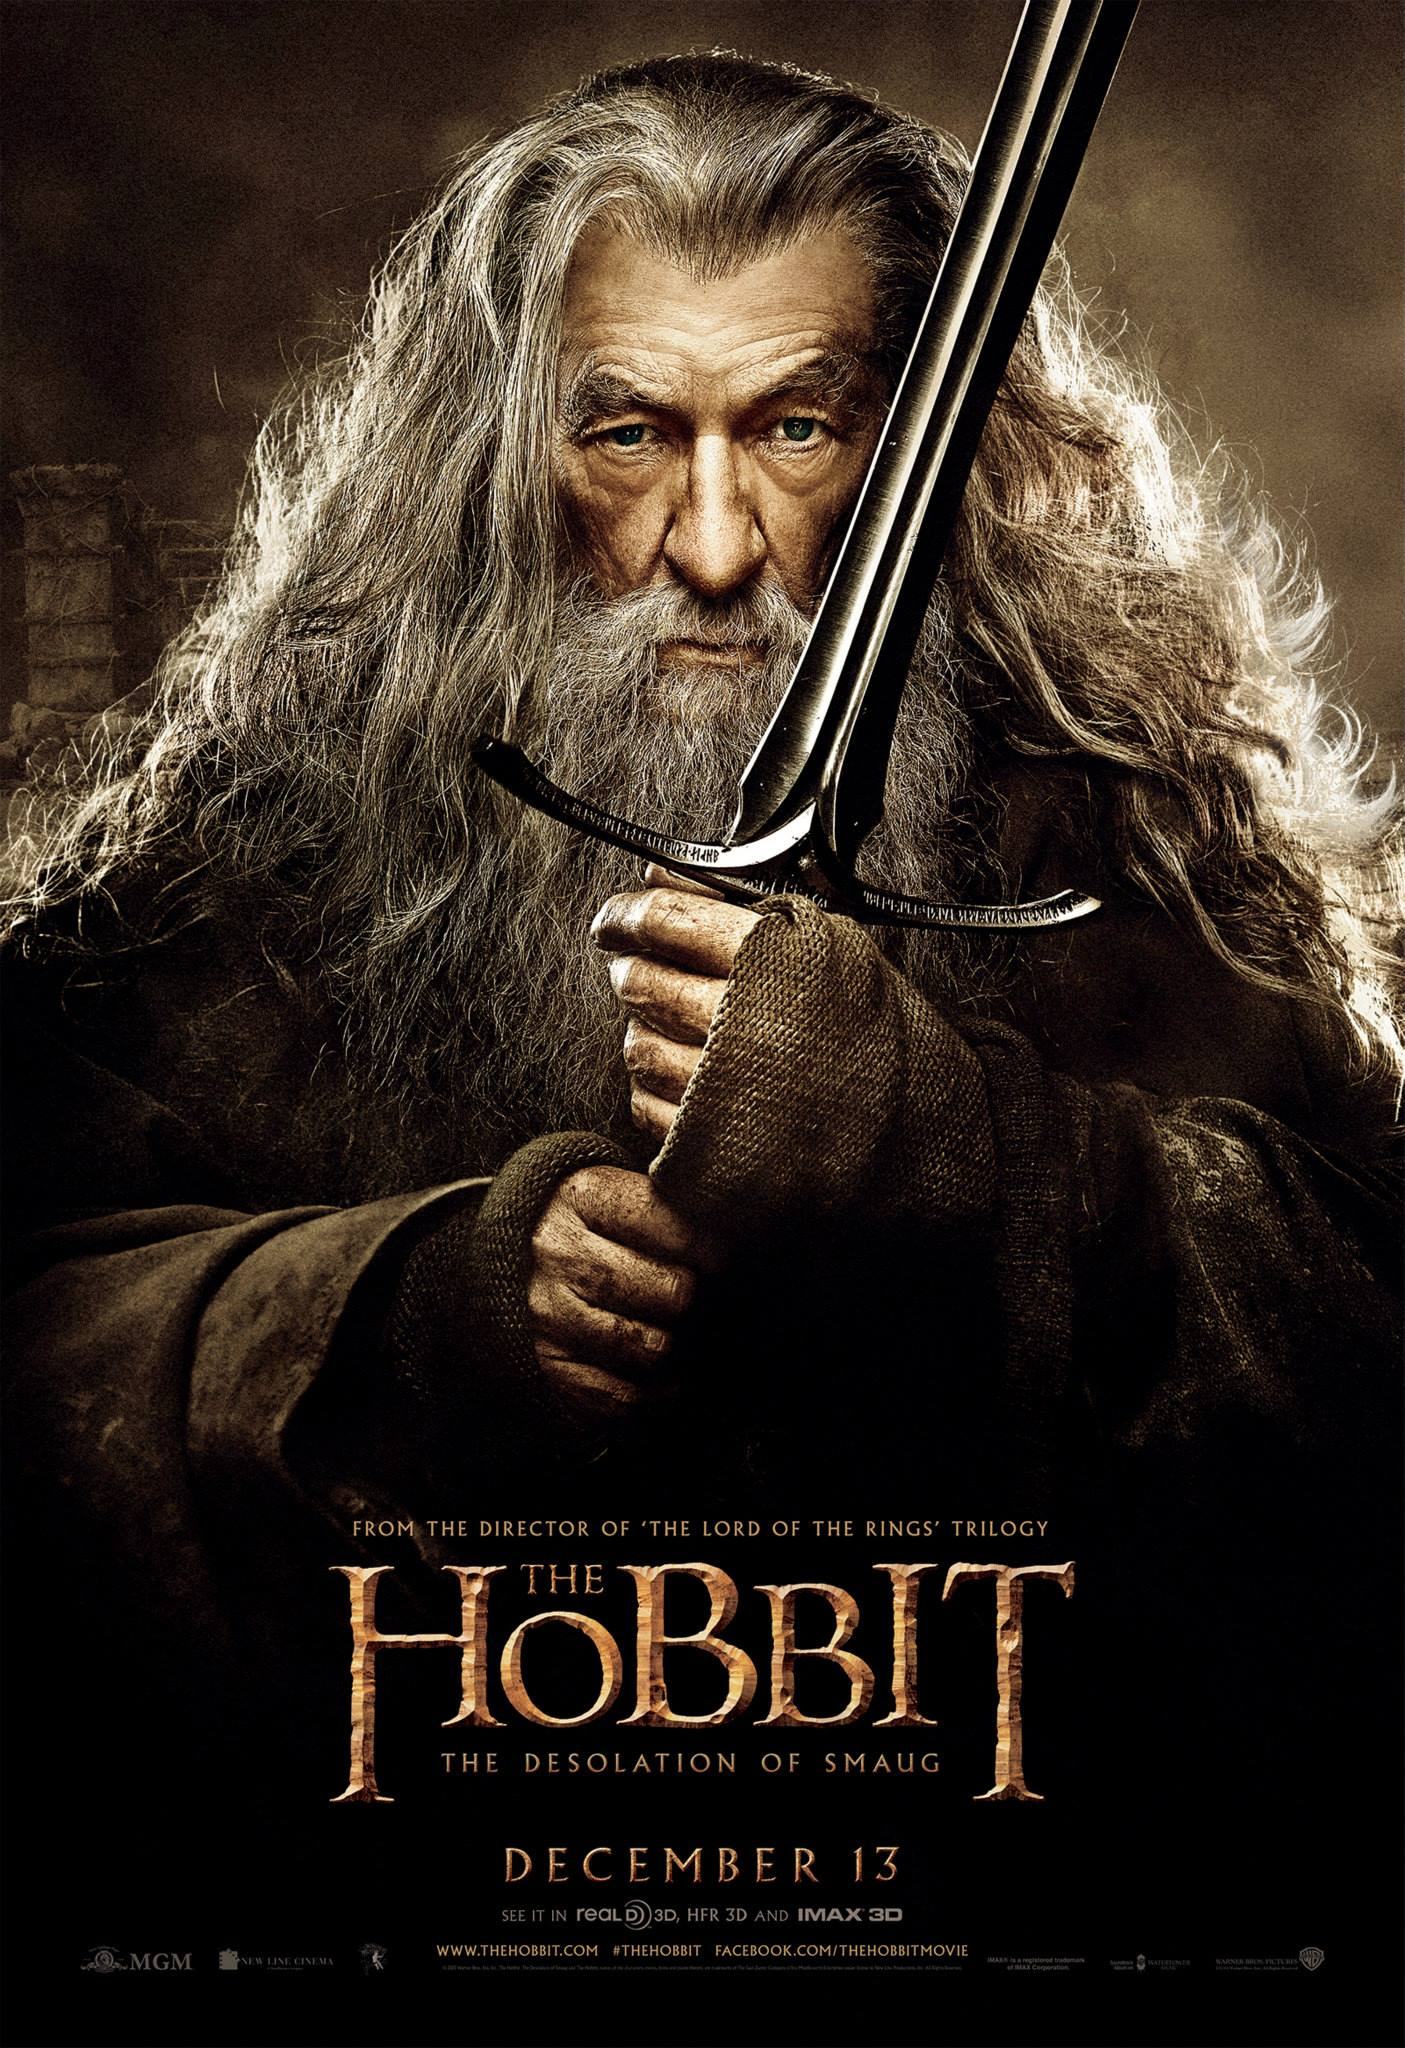 1399175 589981794370763 603149722 o The Hobbit: The Desolation Of Smaug Gallery